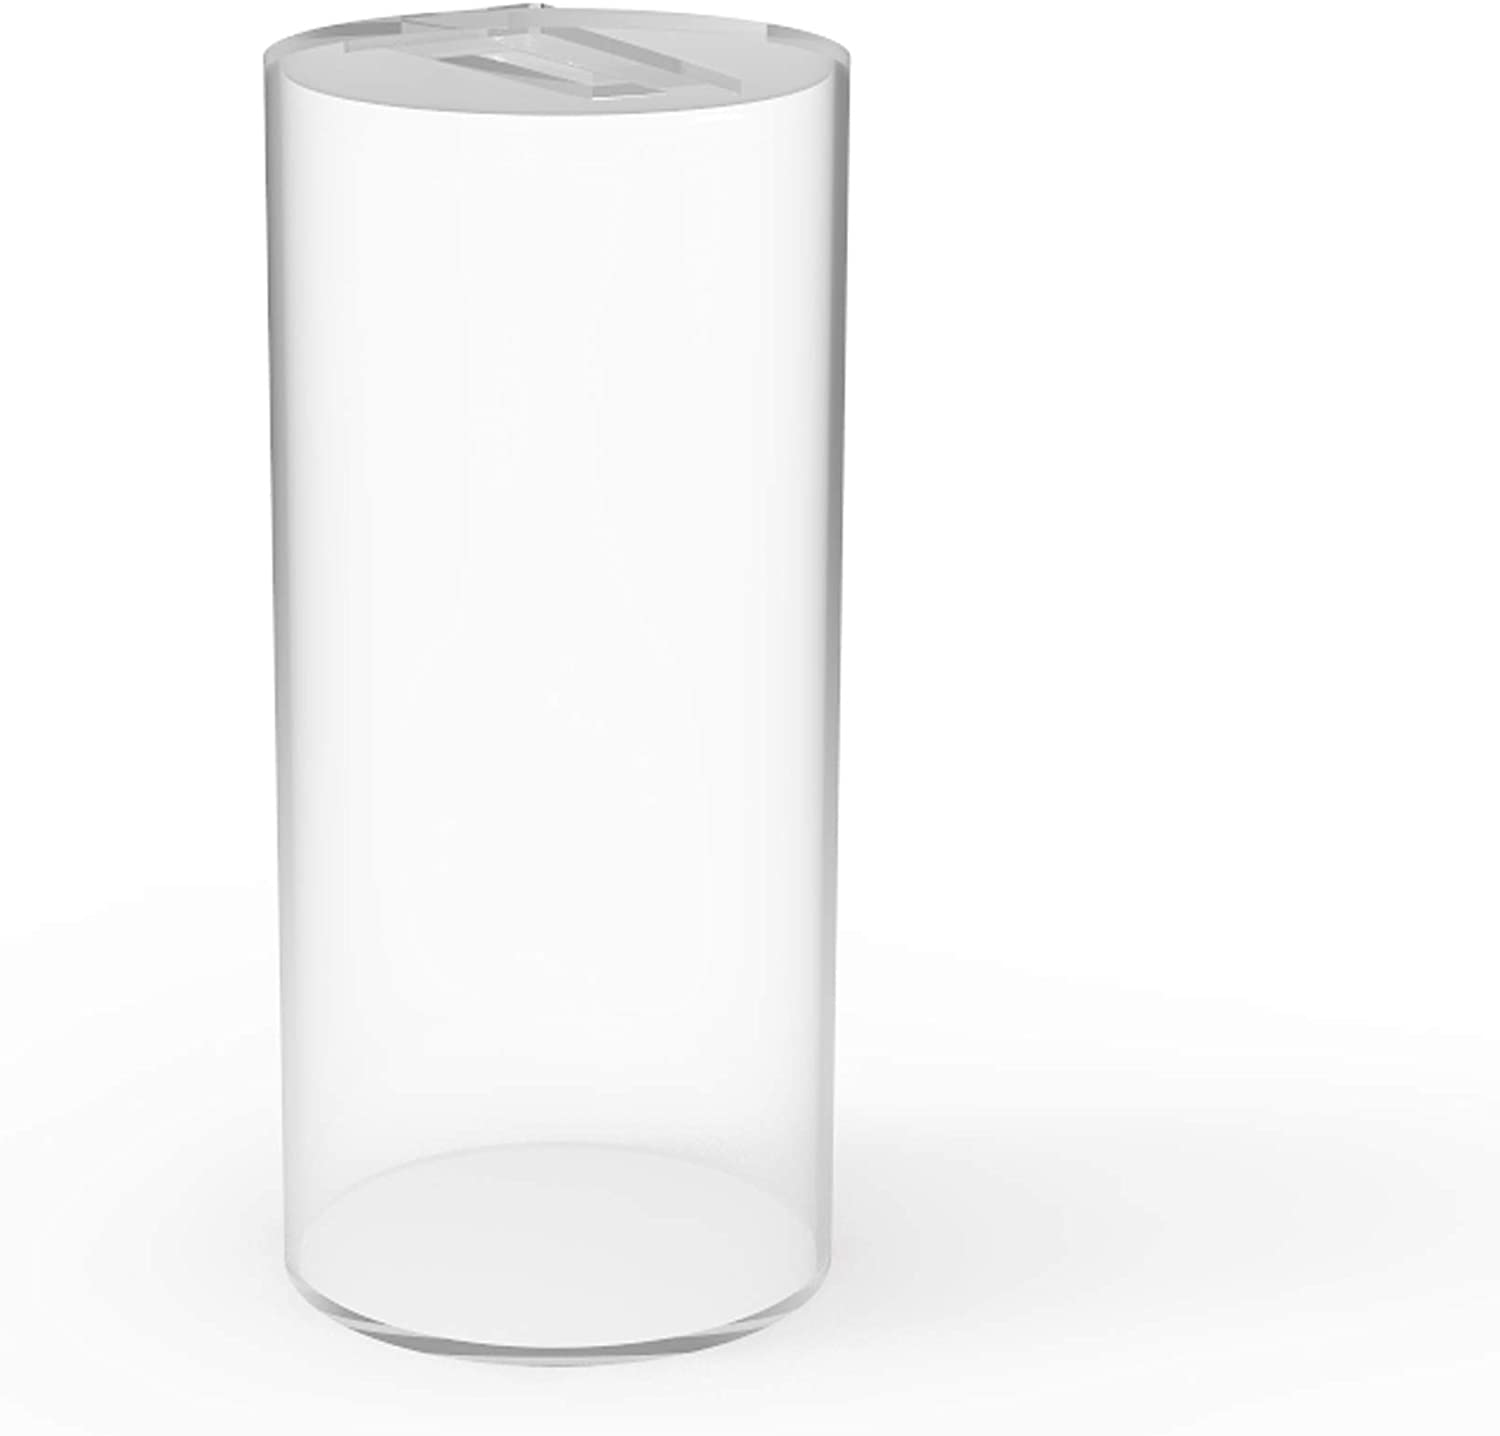 FixtureDisplays Donation Can Fundraising Jar Clear Acrylic Plexiglass 15703D